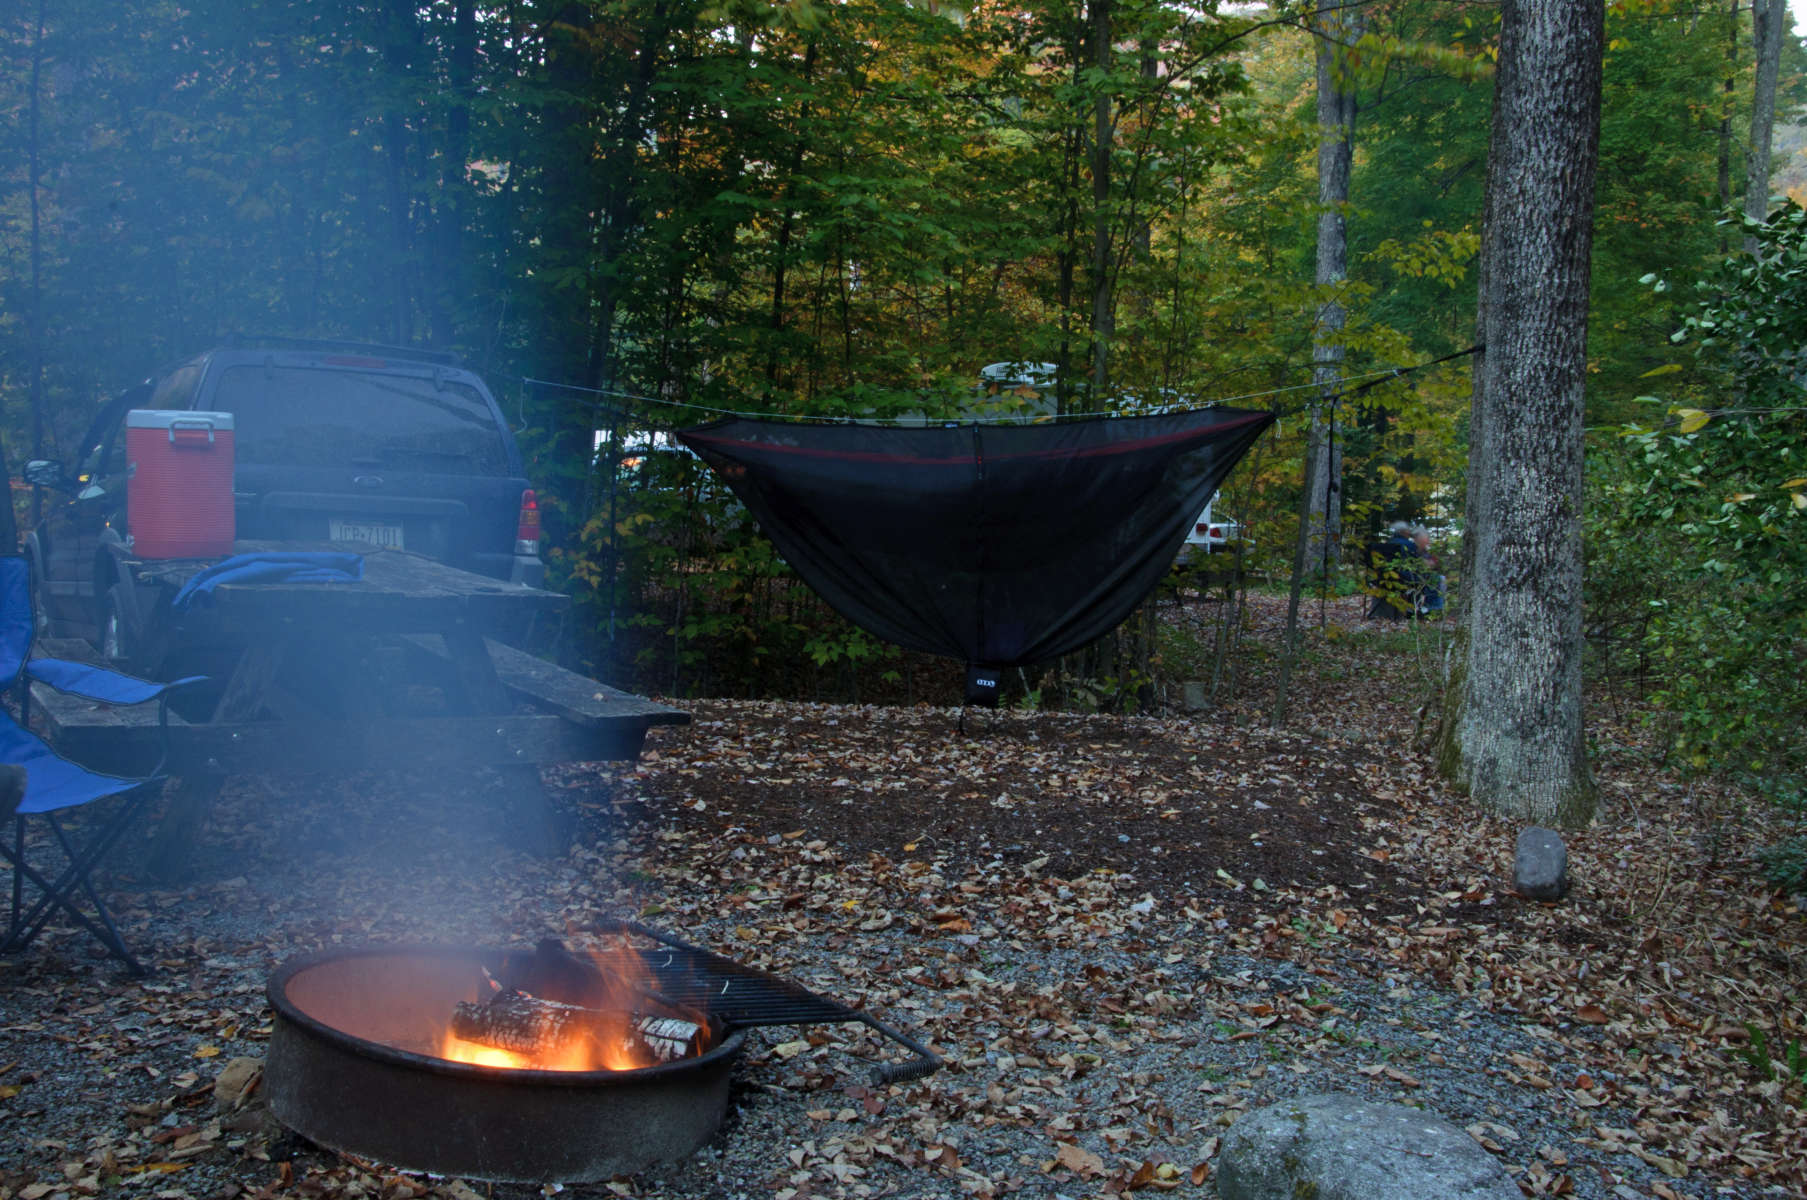 Worlds End Park Campground, Worlds End Park, PA: 2 Hipcamper